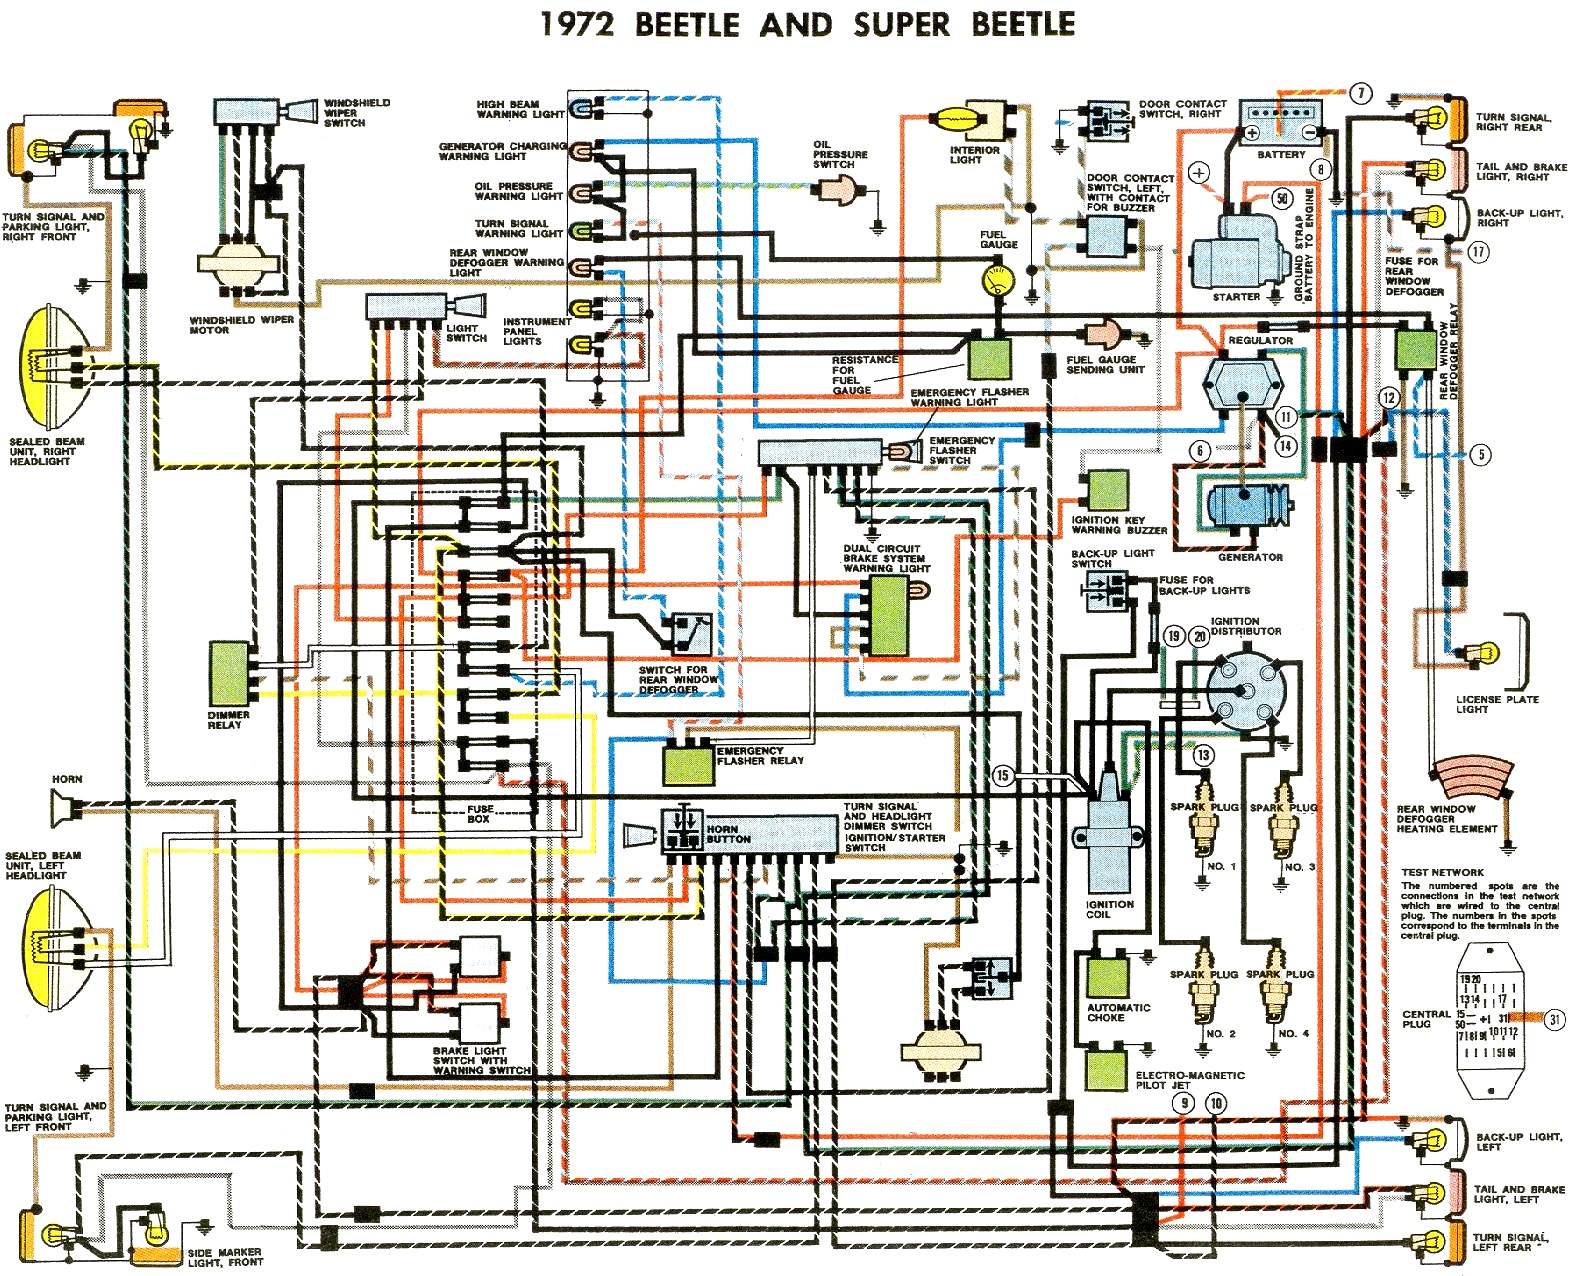 bug_72 1972 beetle wiring diagram thegoldenbug com 2003 volkswagen jetta wiring diagram at webbmarketing.co